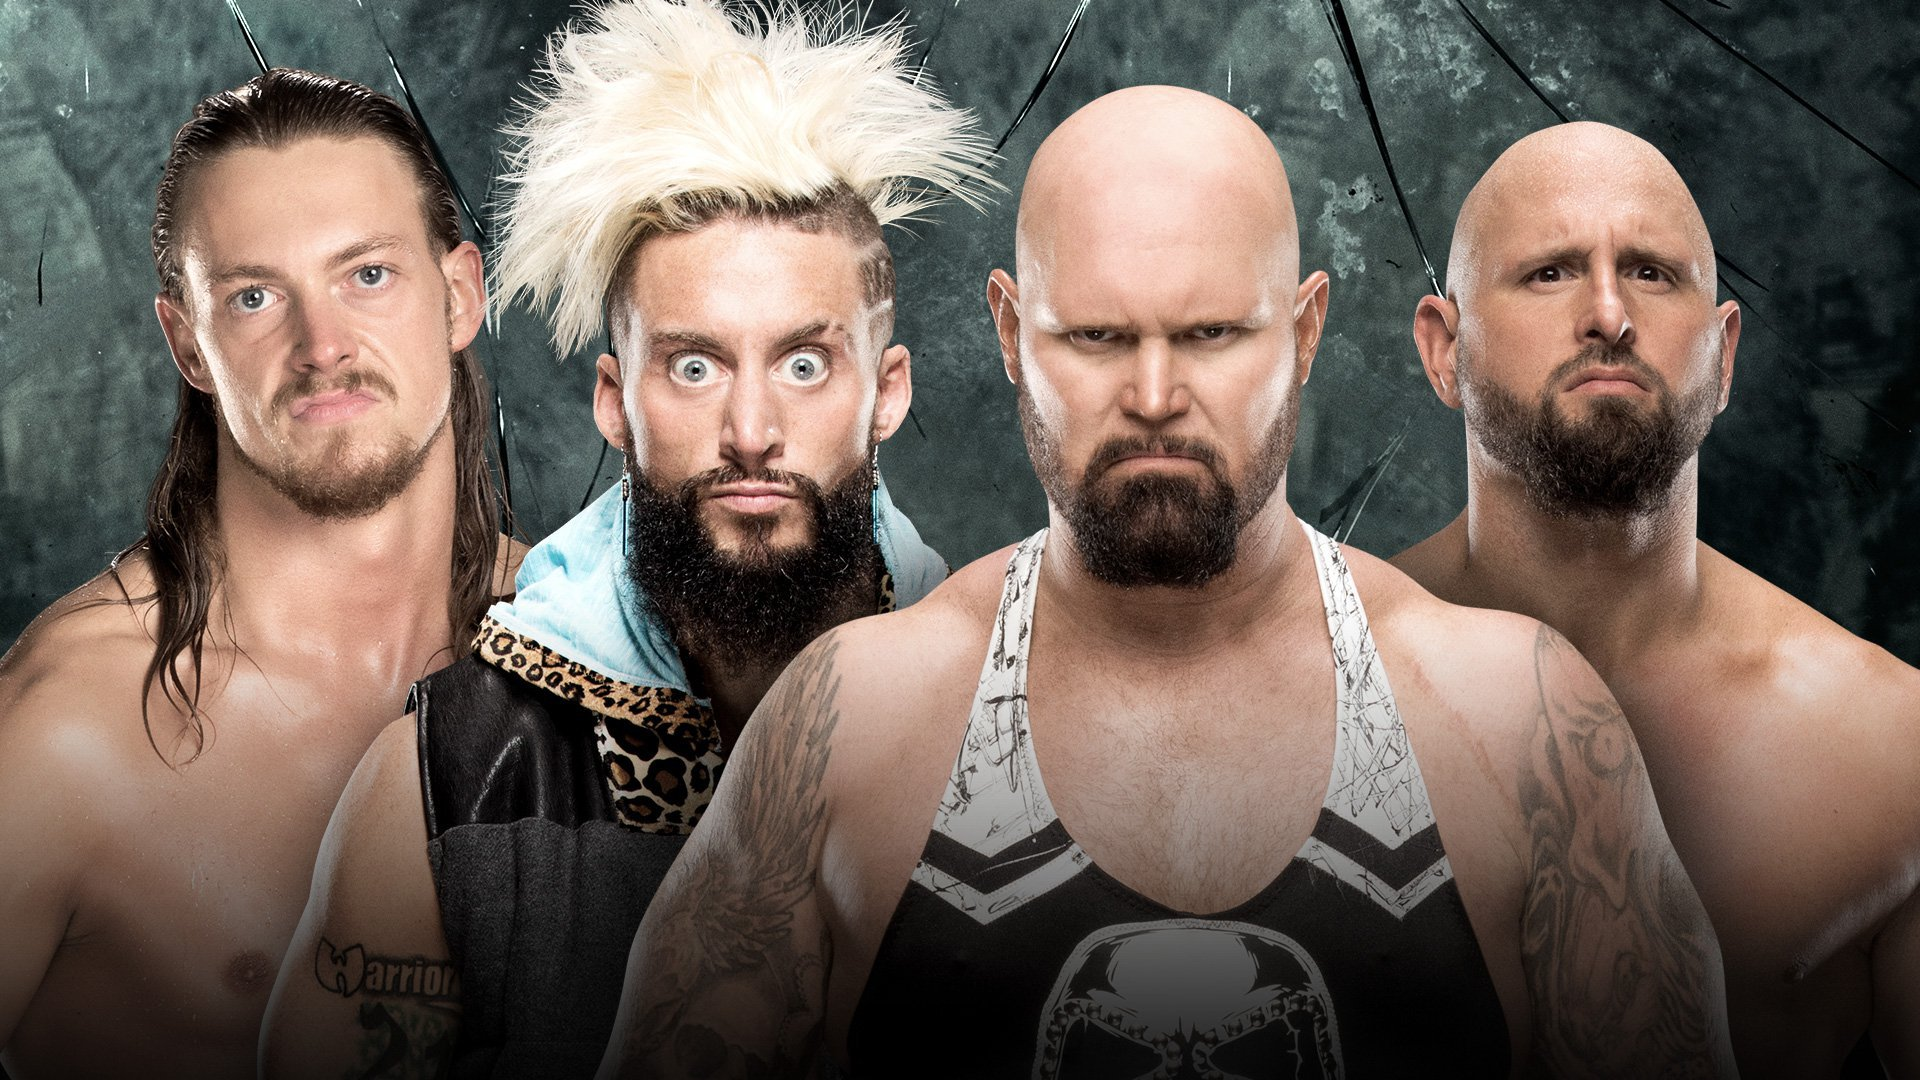 WWE Payback 2017: Enzo & Big Cass vs. Luke Gallows & Karl Anderson